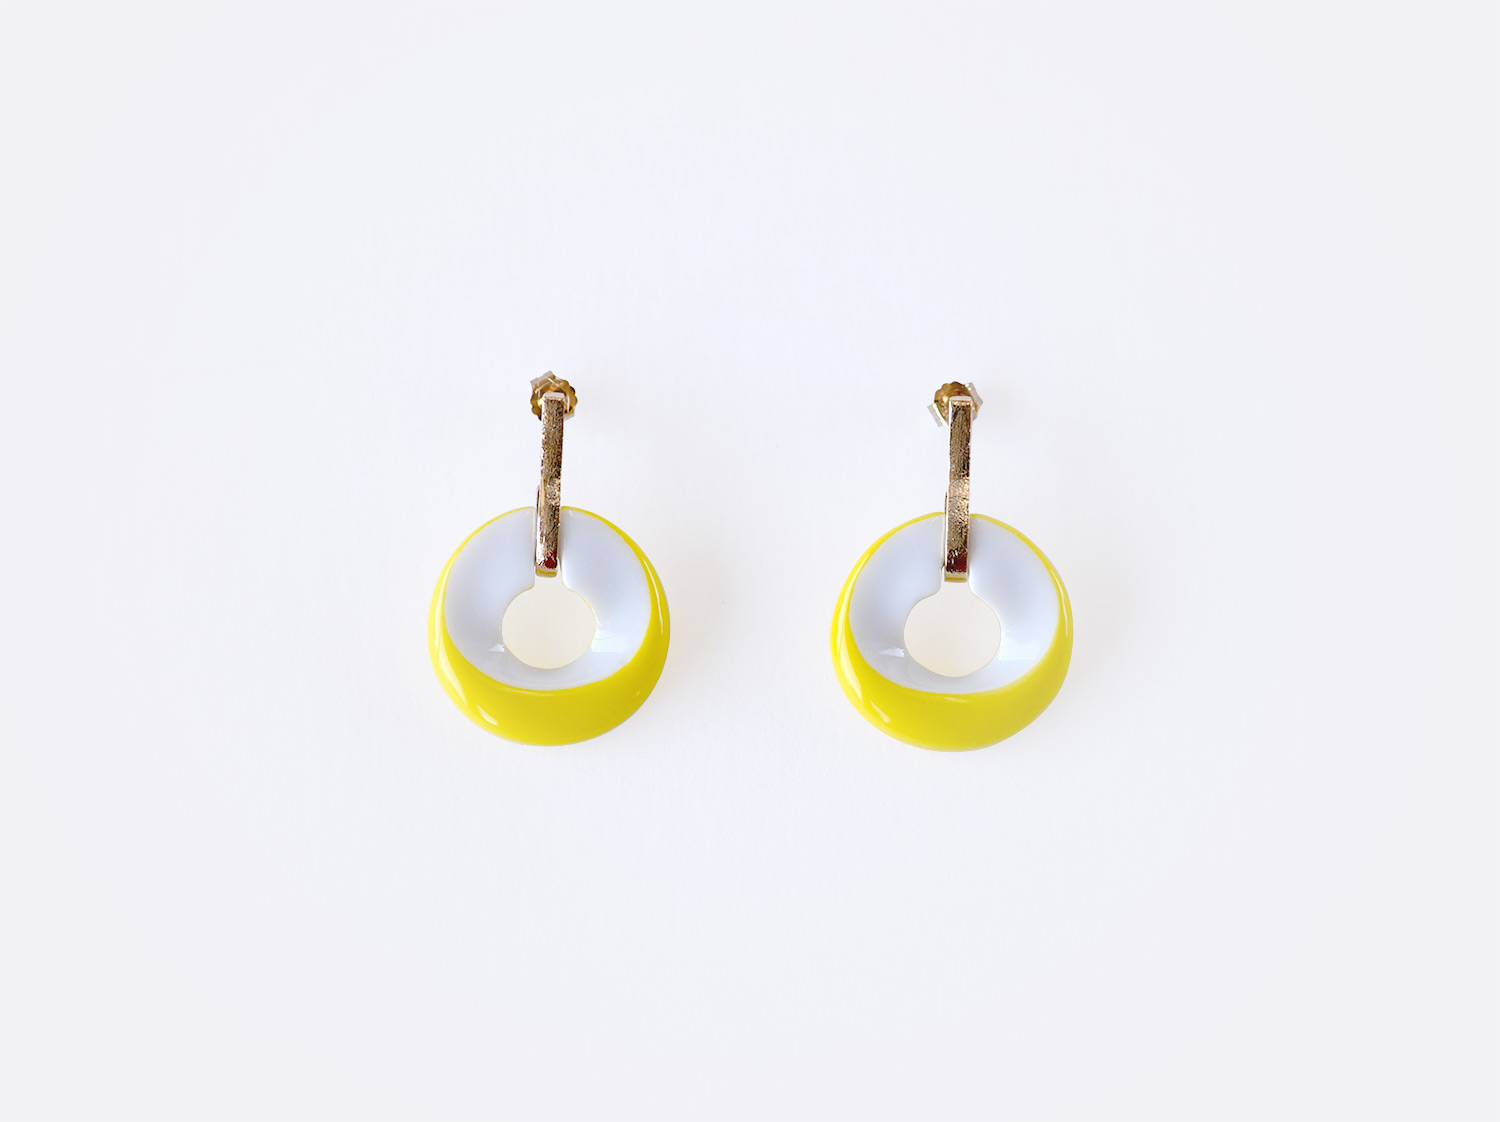 Boucles d'oreilles Alba jaune en porcelaine de la collection ALBA JAUNE Bernardaud